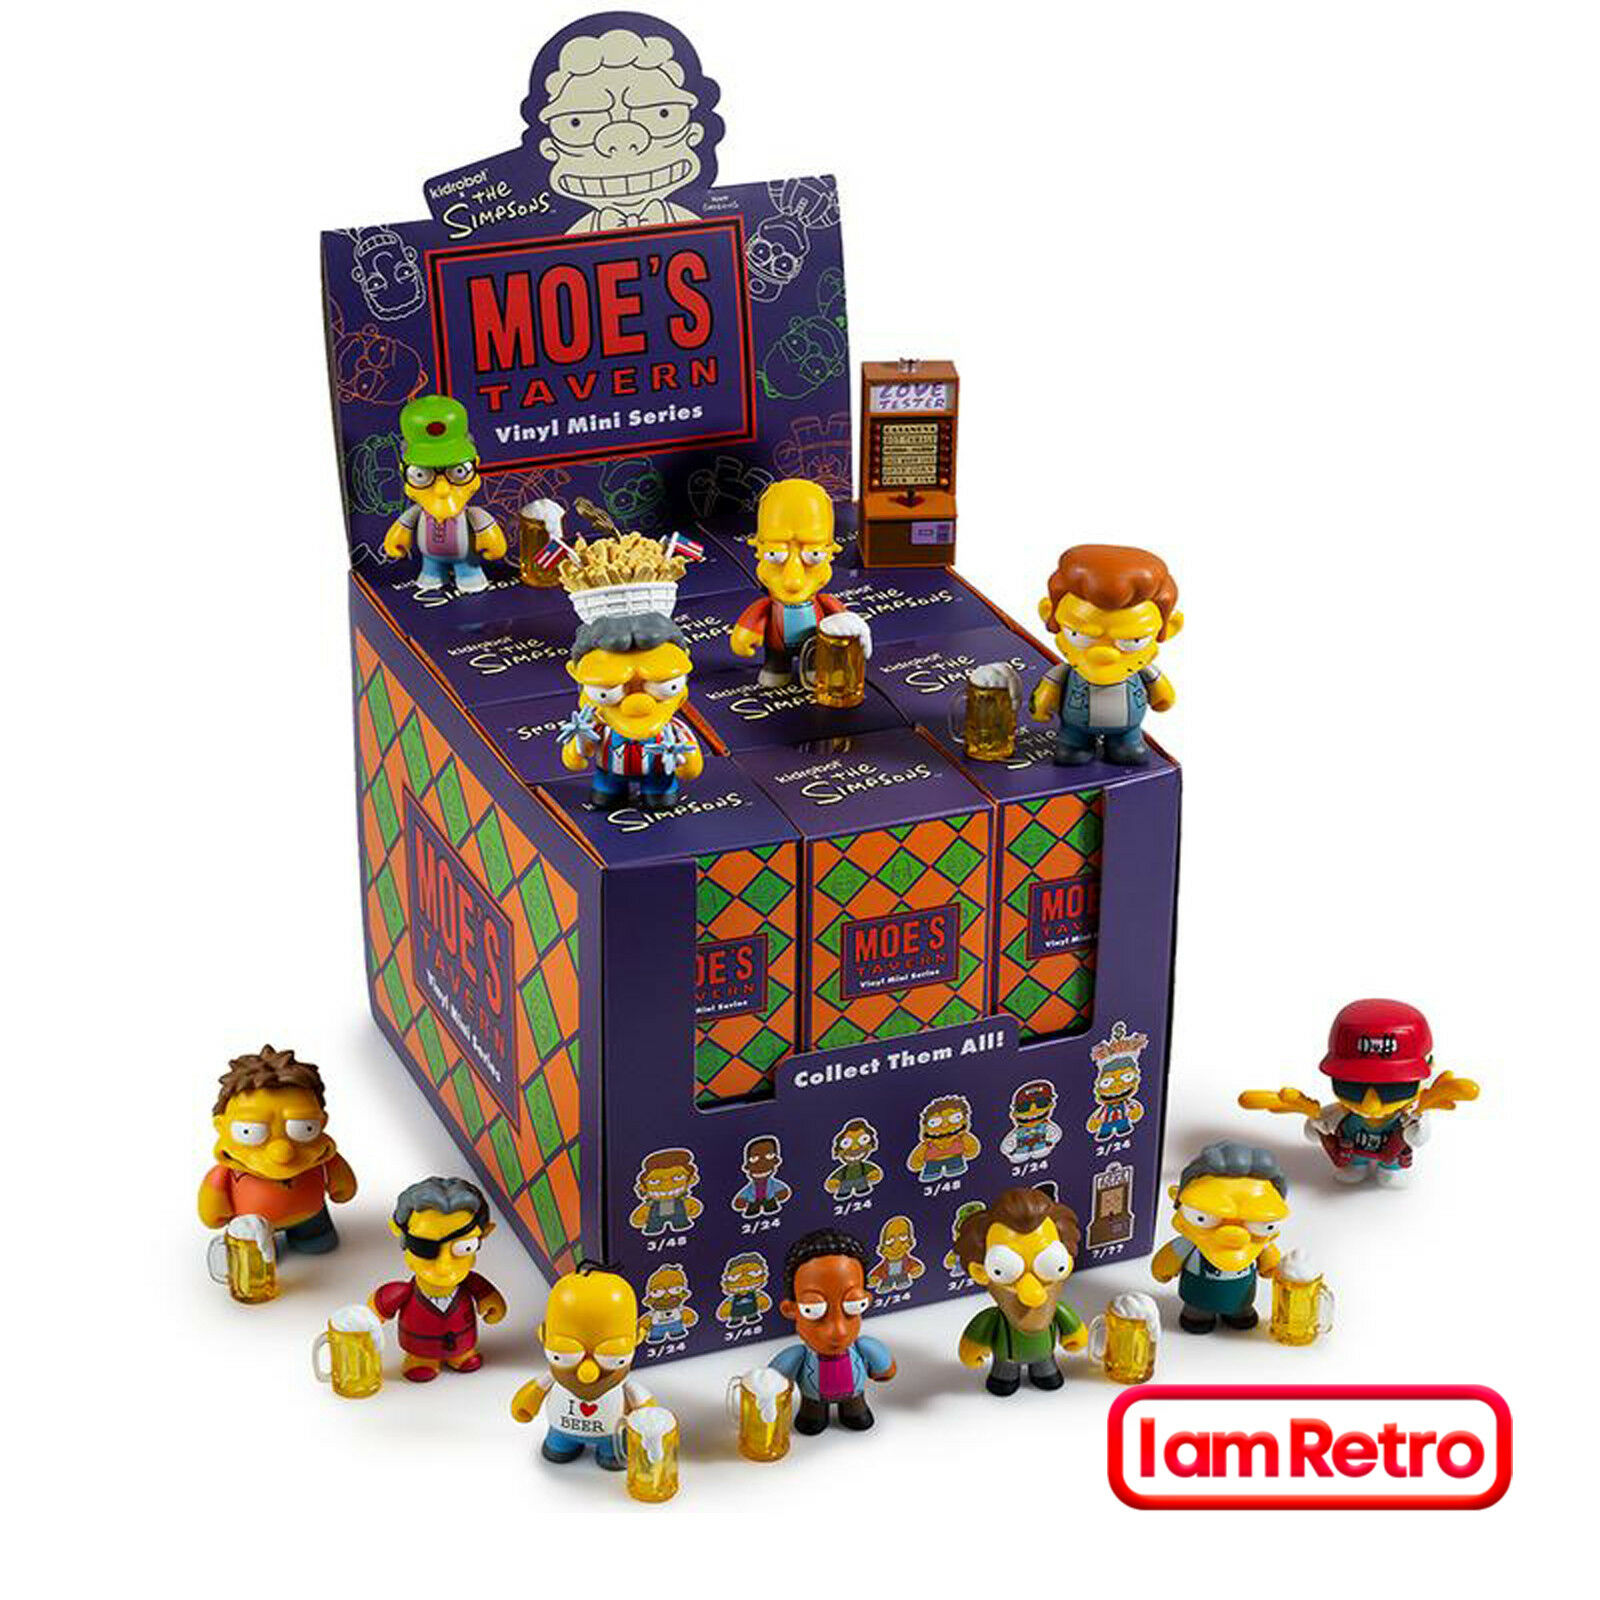 Moe's Tavern The Simpsons Mini Series Nuovo Sealed Display Case 24 pcs by Kidrobot